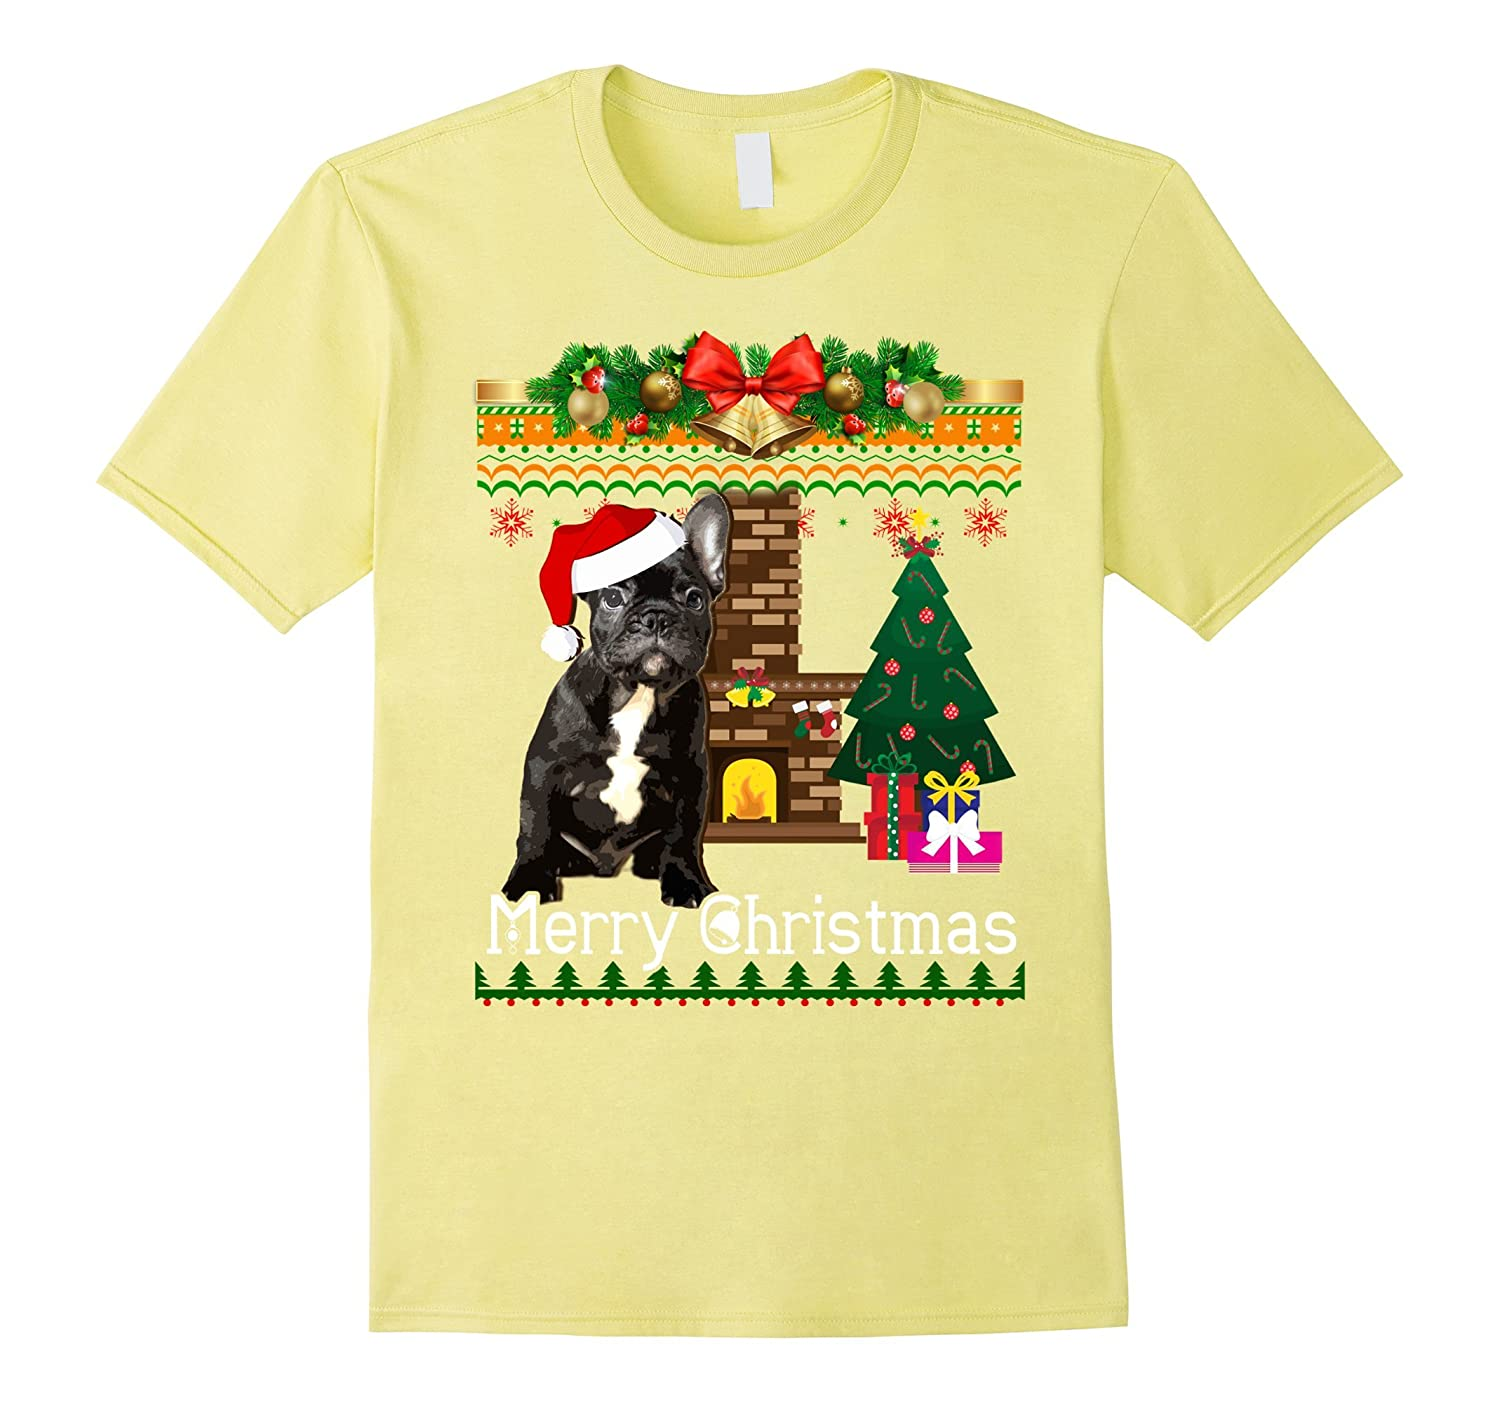 French Bulldog Christmas Jumper.Ugly Christmas Sweater French Bulldogs T Shirt Funny Dog Anz